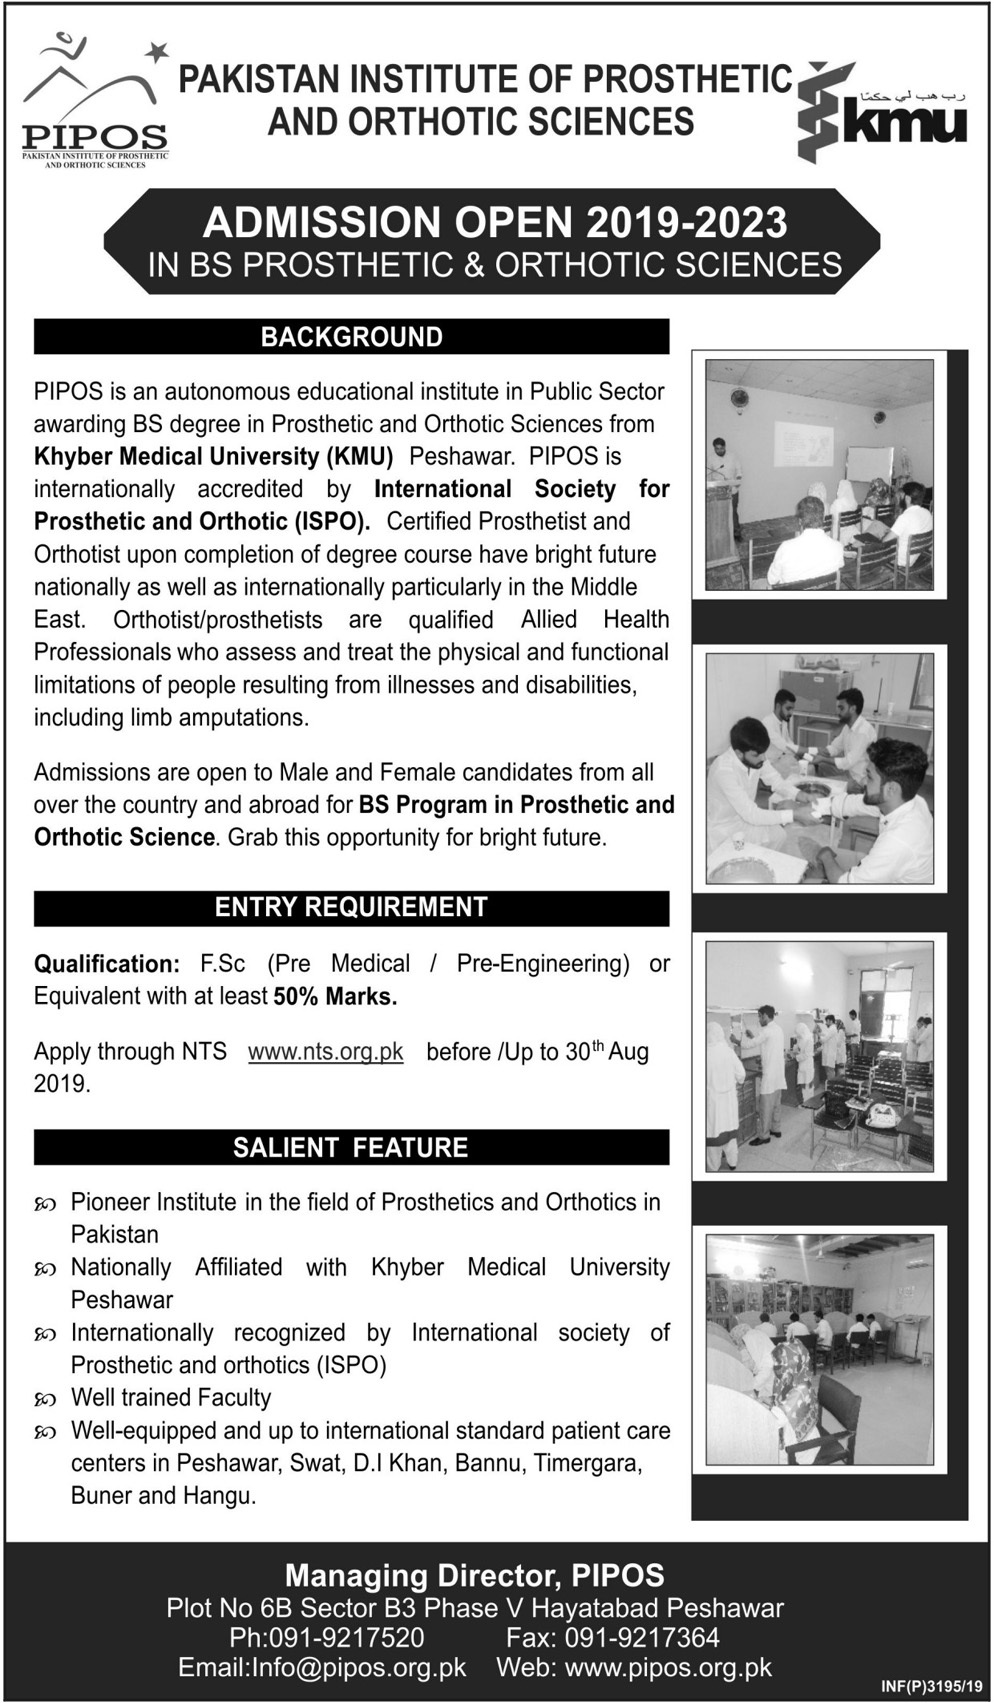 Pakistan Institute Of Prosthetics Orthotic Sciences PIPOS Admission NTS Test Roll No Slip